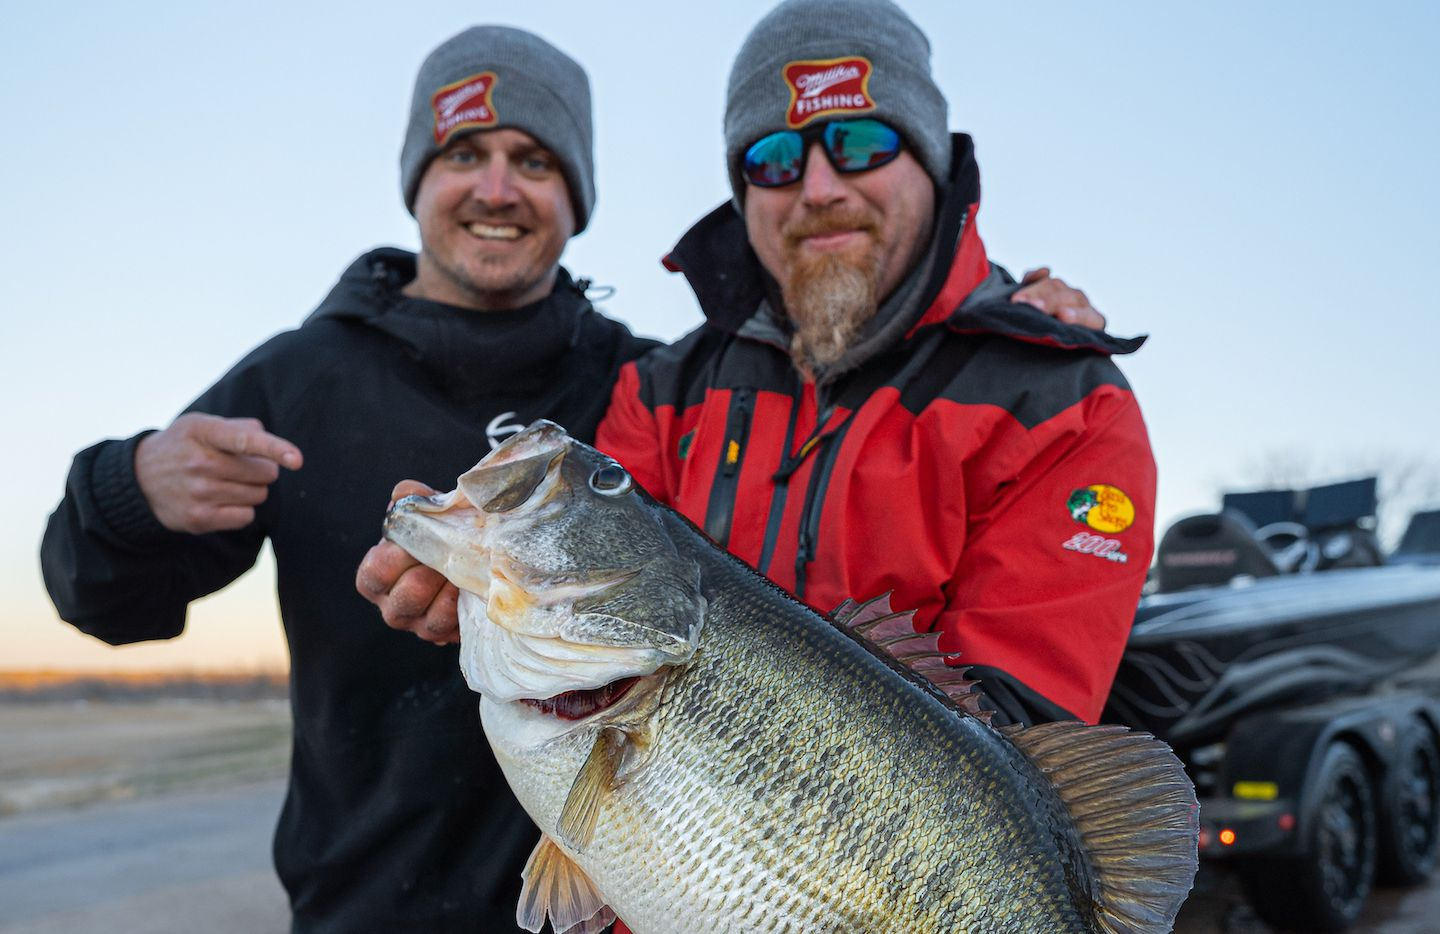 Joe McKay (right) and Ben Milliken with the 16.40-pound Toyota ShareLunker McKay landed at Lake O.H. Ivie on Feb. 19. The 19,000-acre lake near San Angelo produced four other fish ranging 13.20 to 14.4 pounds between Feb. 21-25.